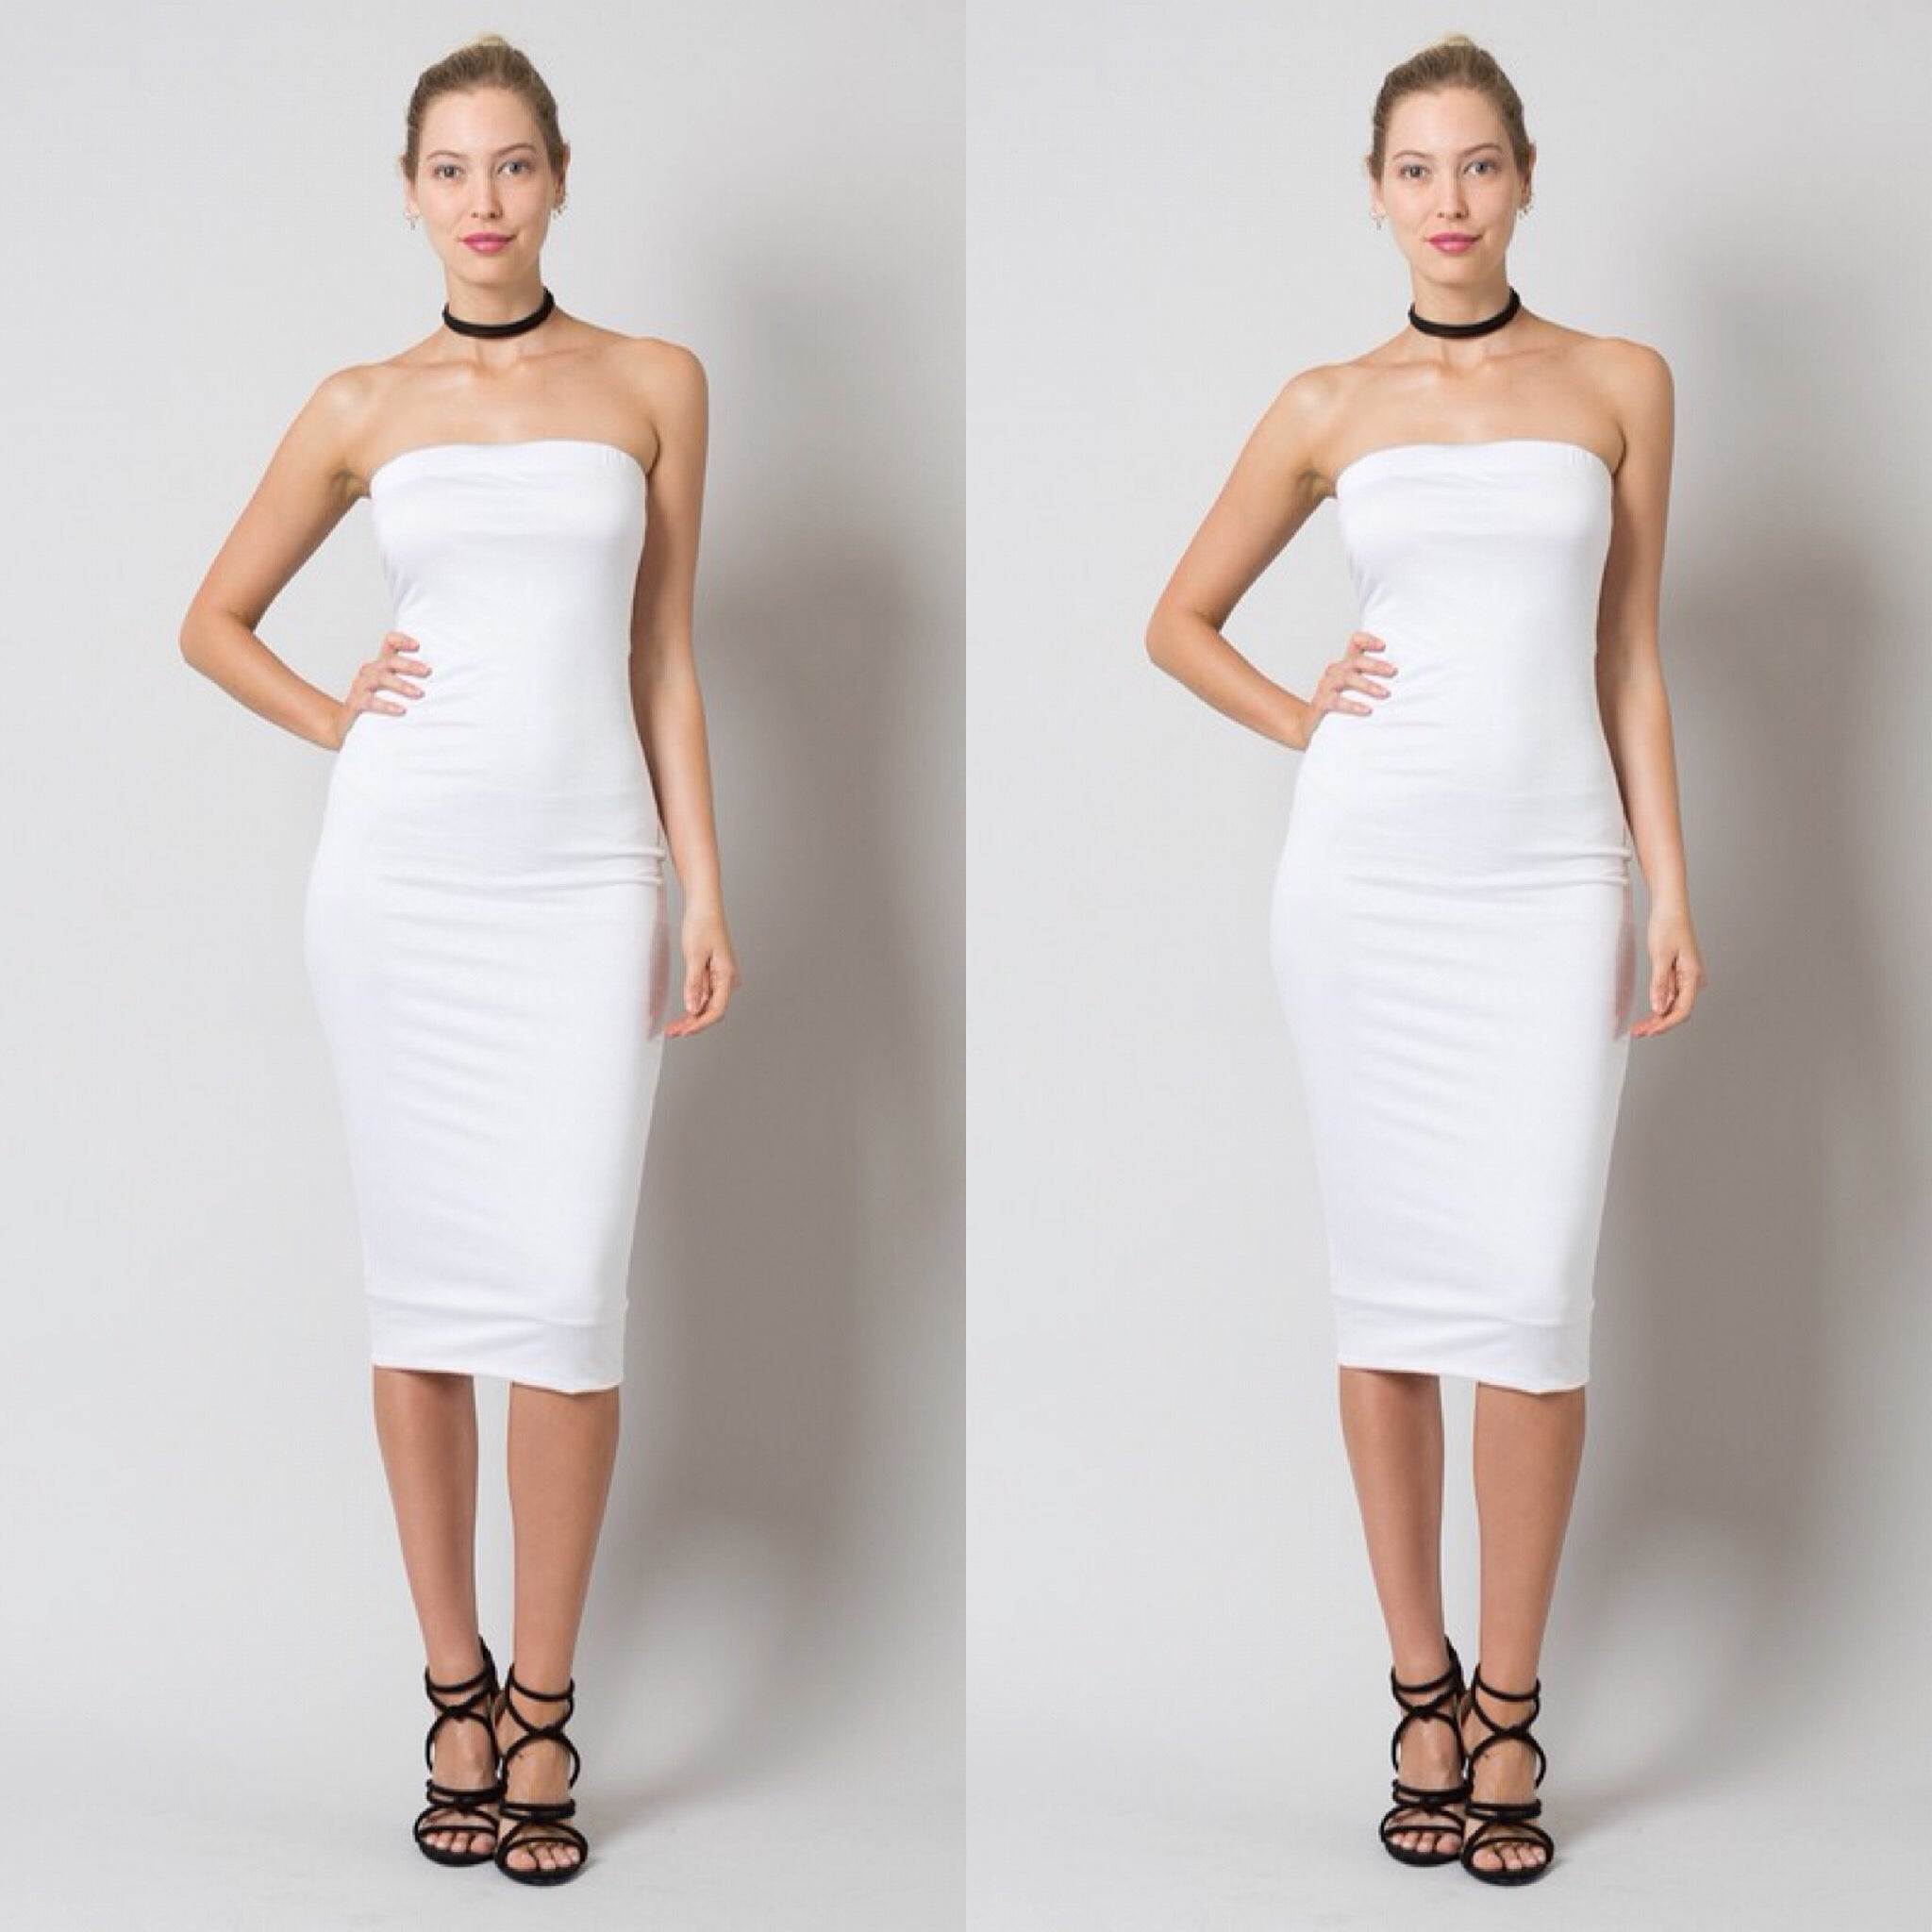 Buy Strapless Off White Plus Size Tube Top Dress at Social ...